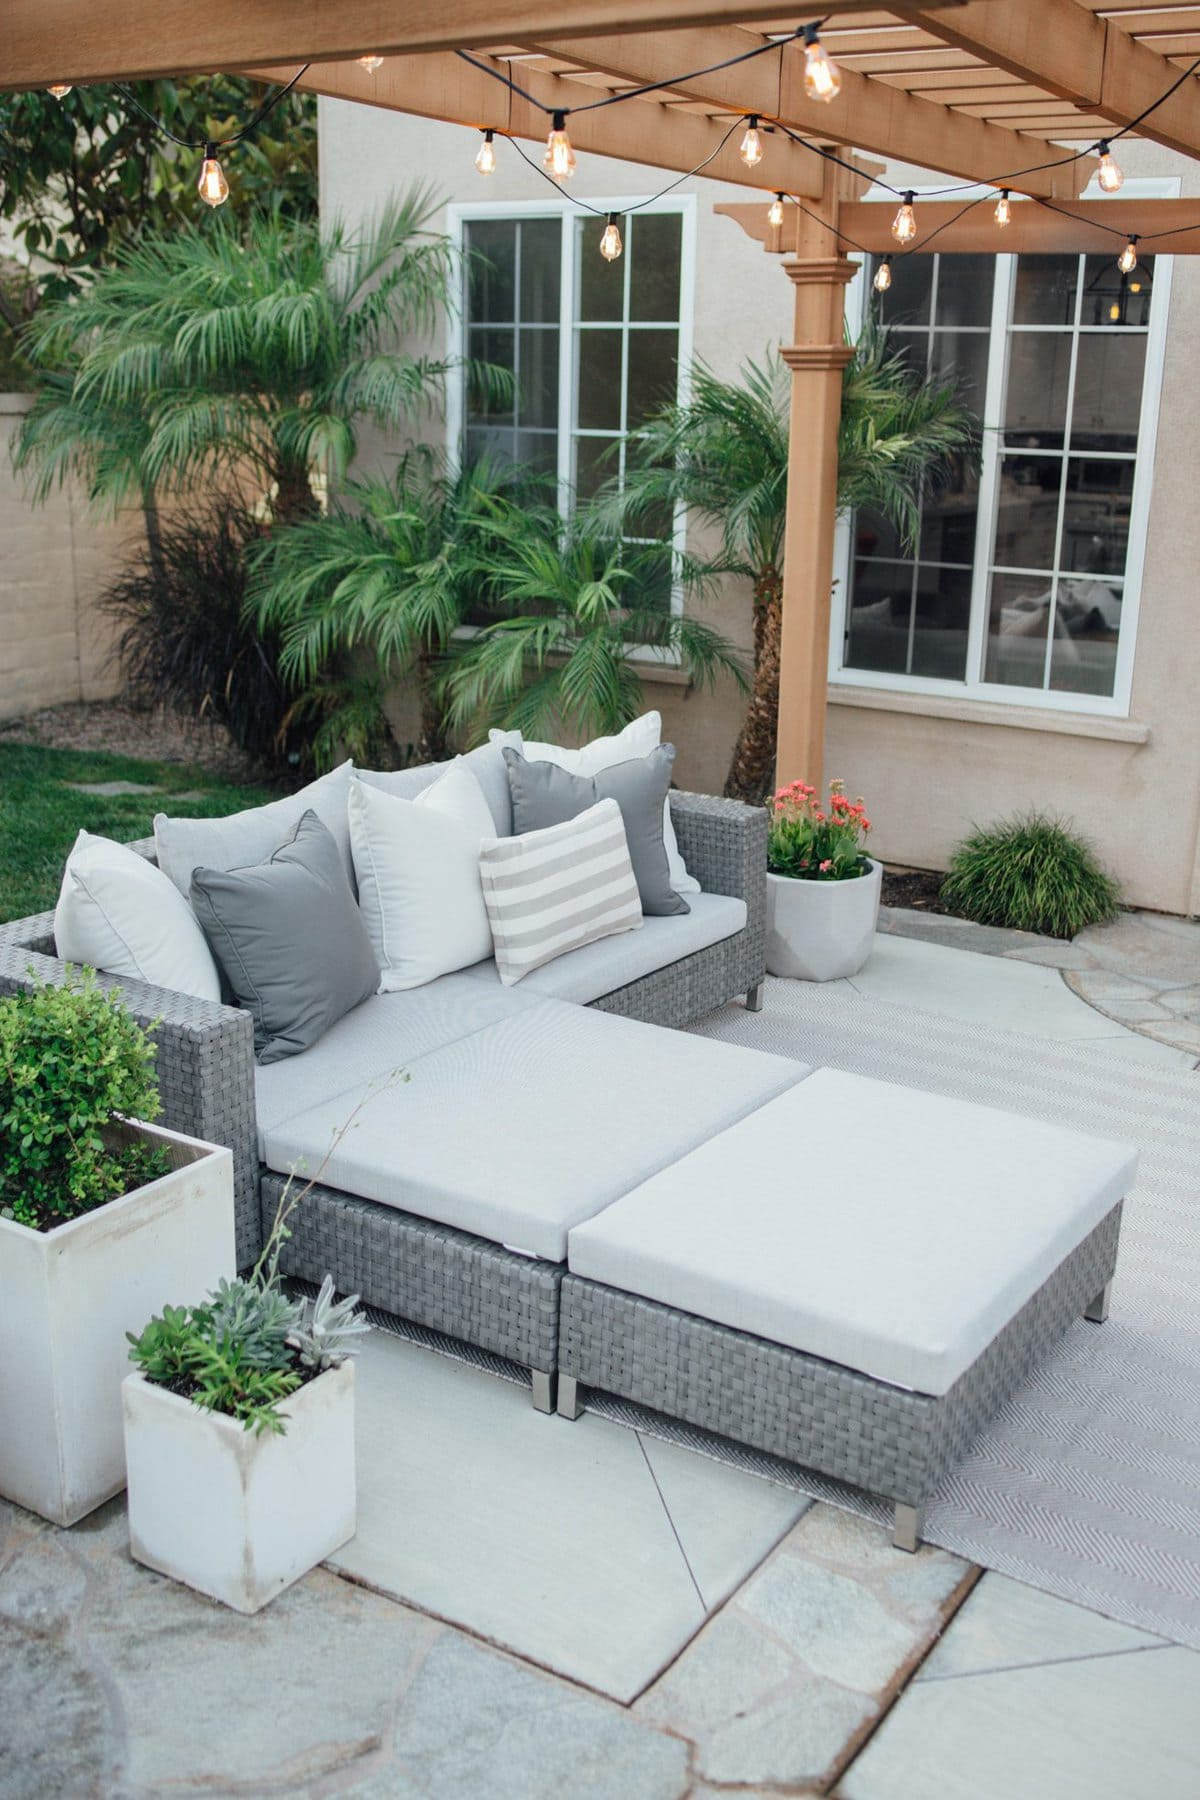 used foto idea clearance metal furniture sale for amazing patio of photograph